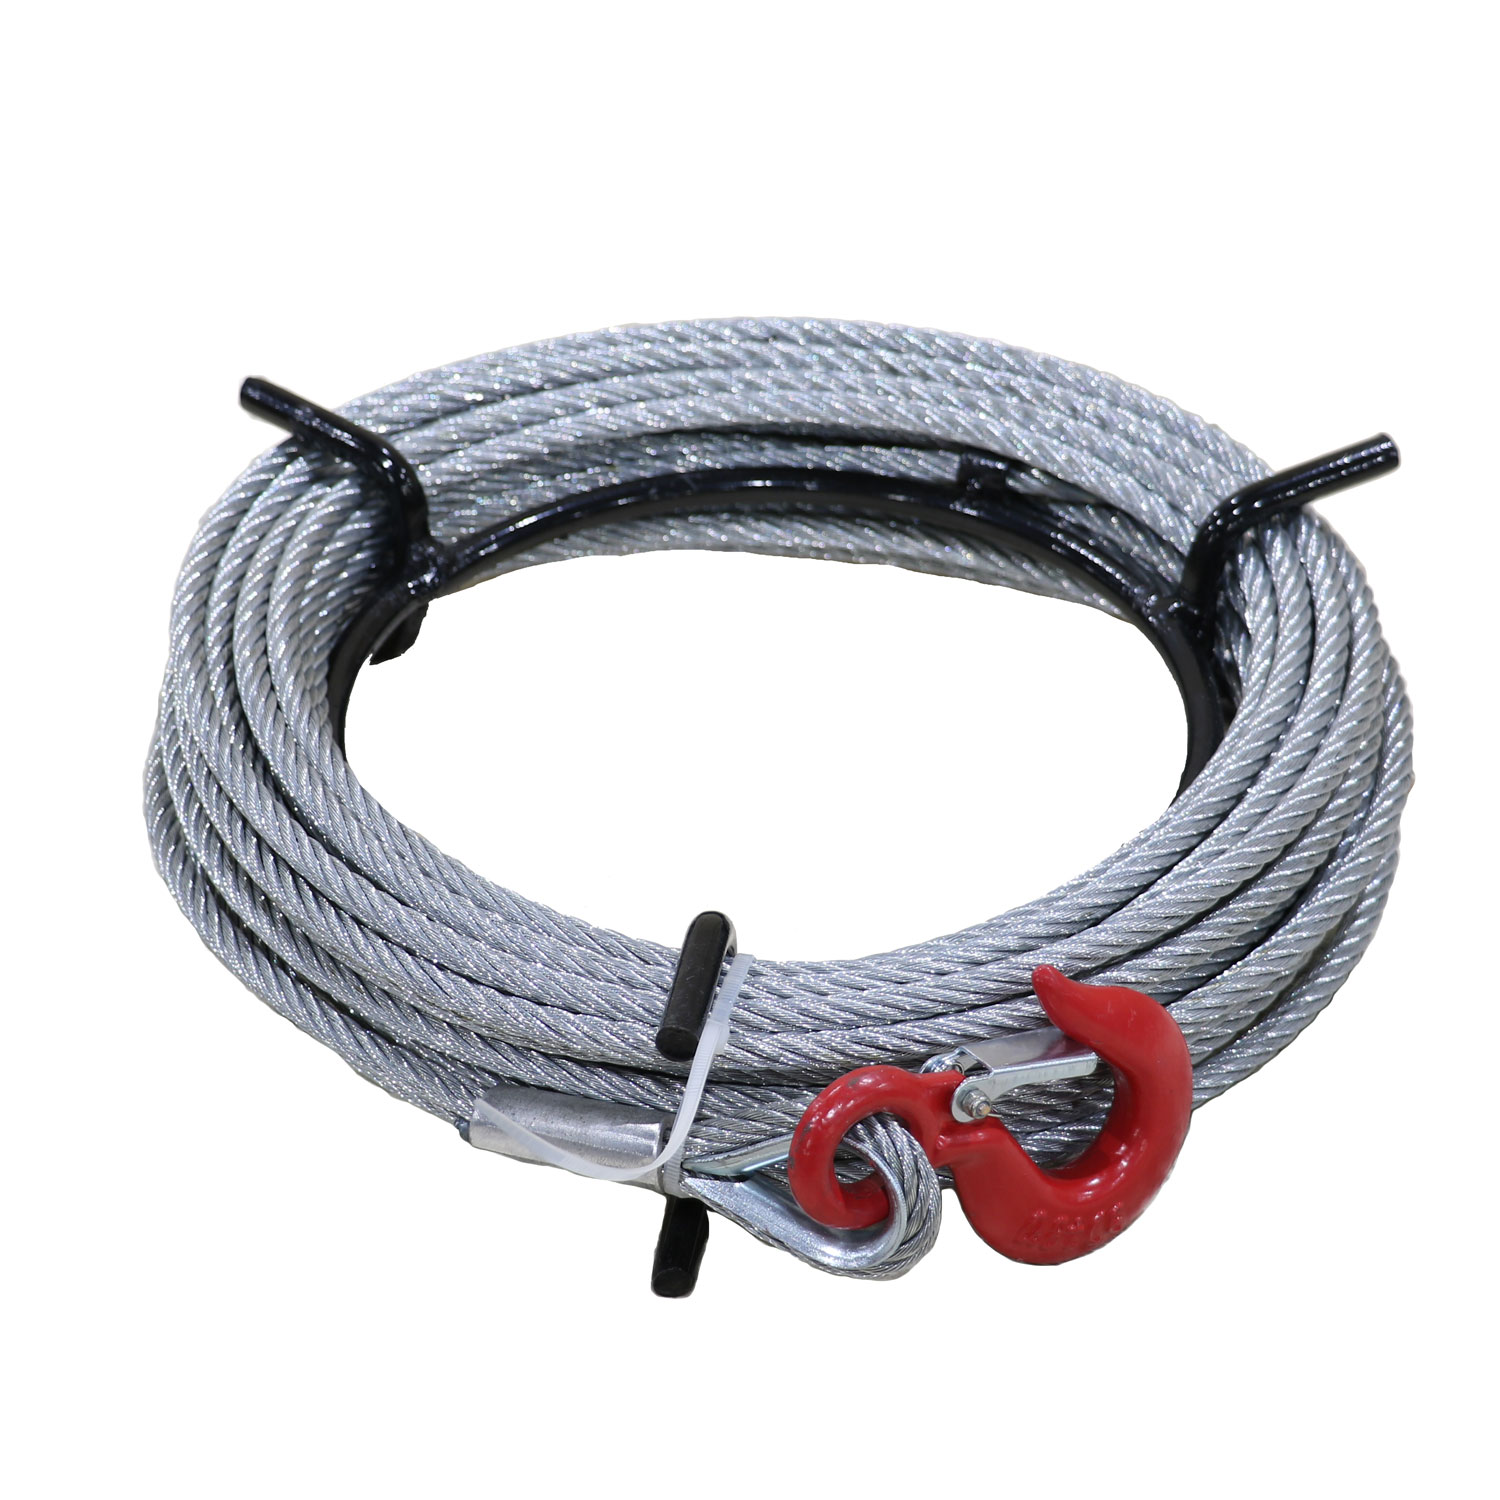 Replacement Cable For 1763 Lbs Capacity Tyler Tool